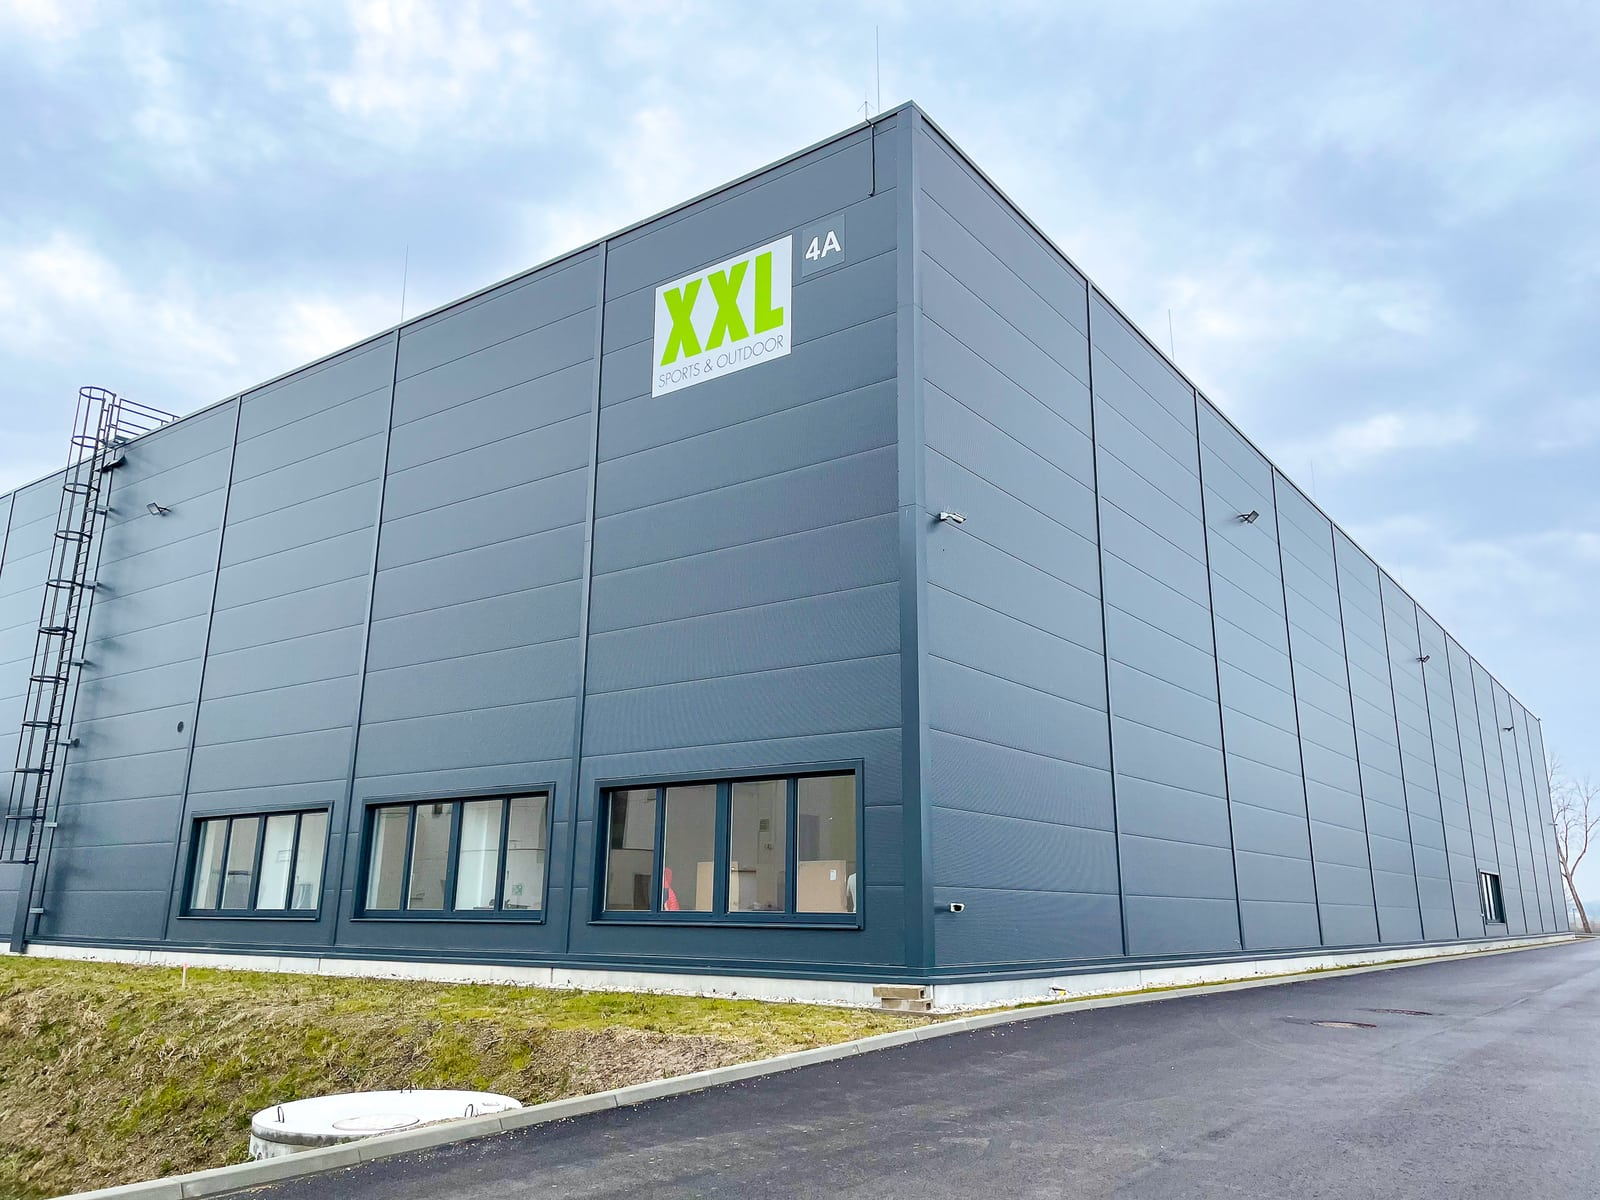 Central Warehouse Austria XXL building from the outside